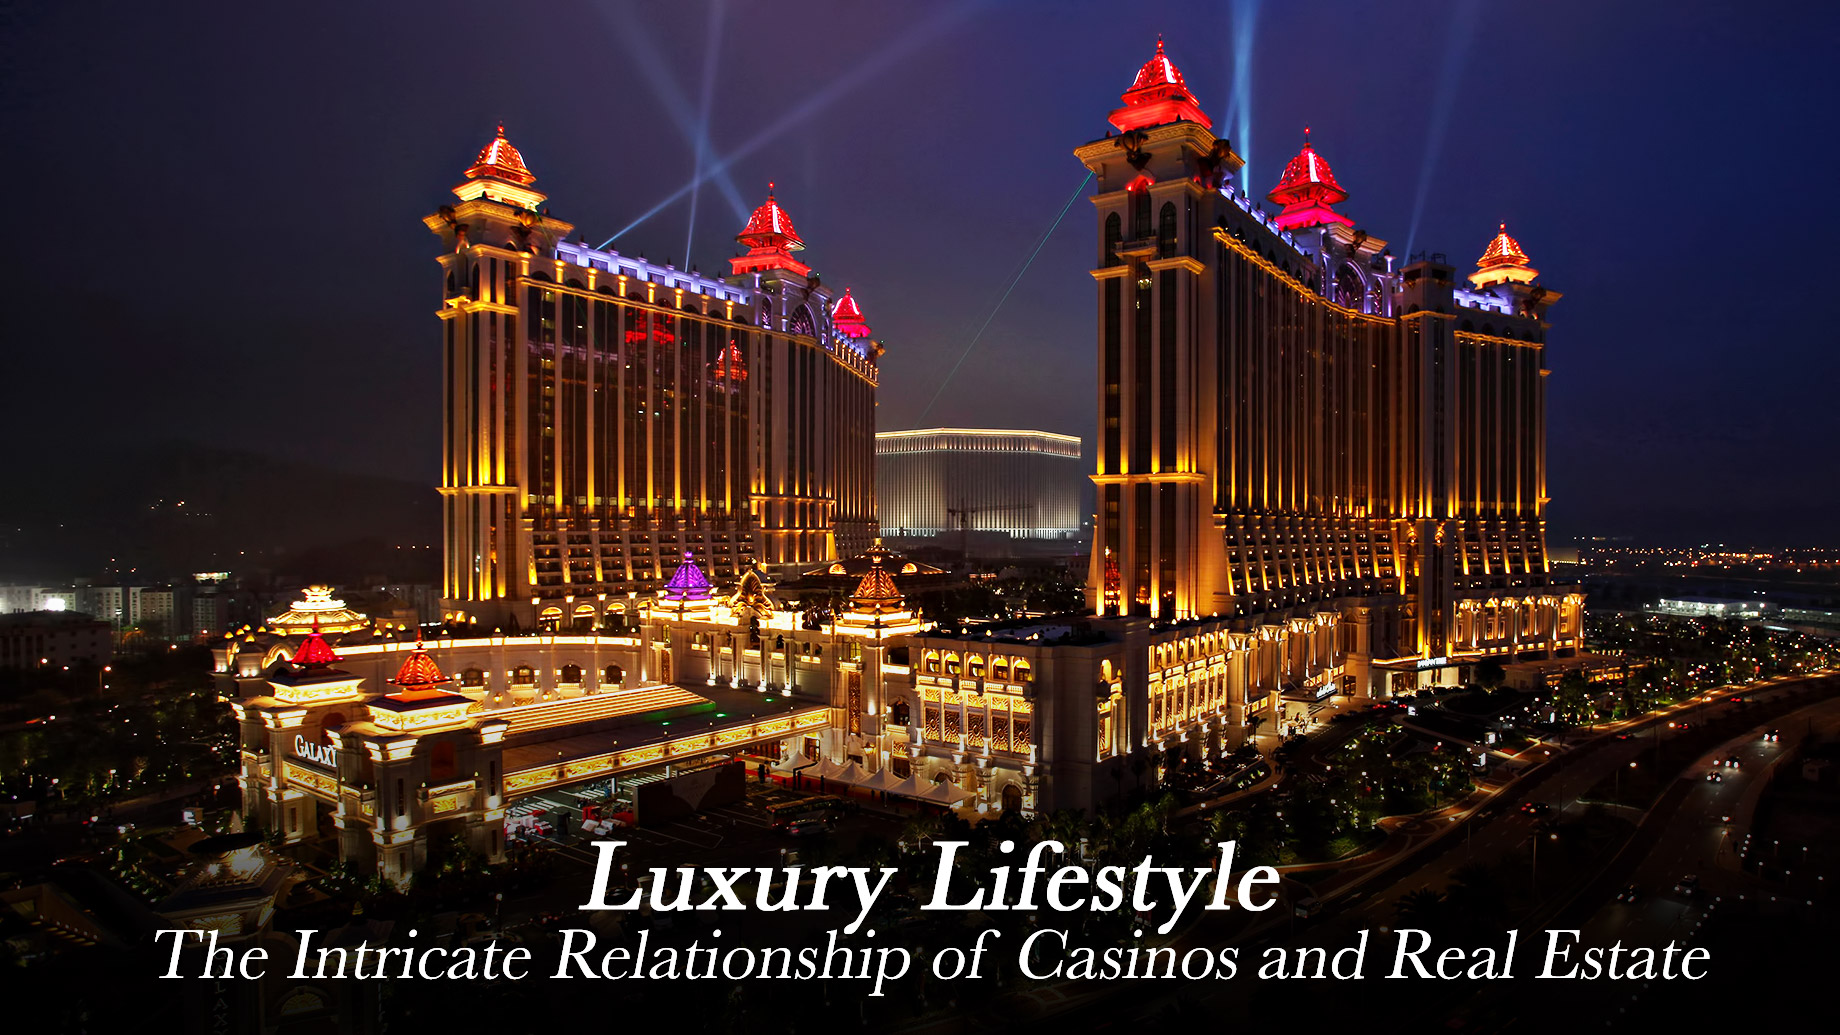 Luxury Lifestyle - The Intricate Relationship of Casinos and Real Estate